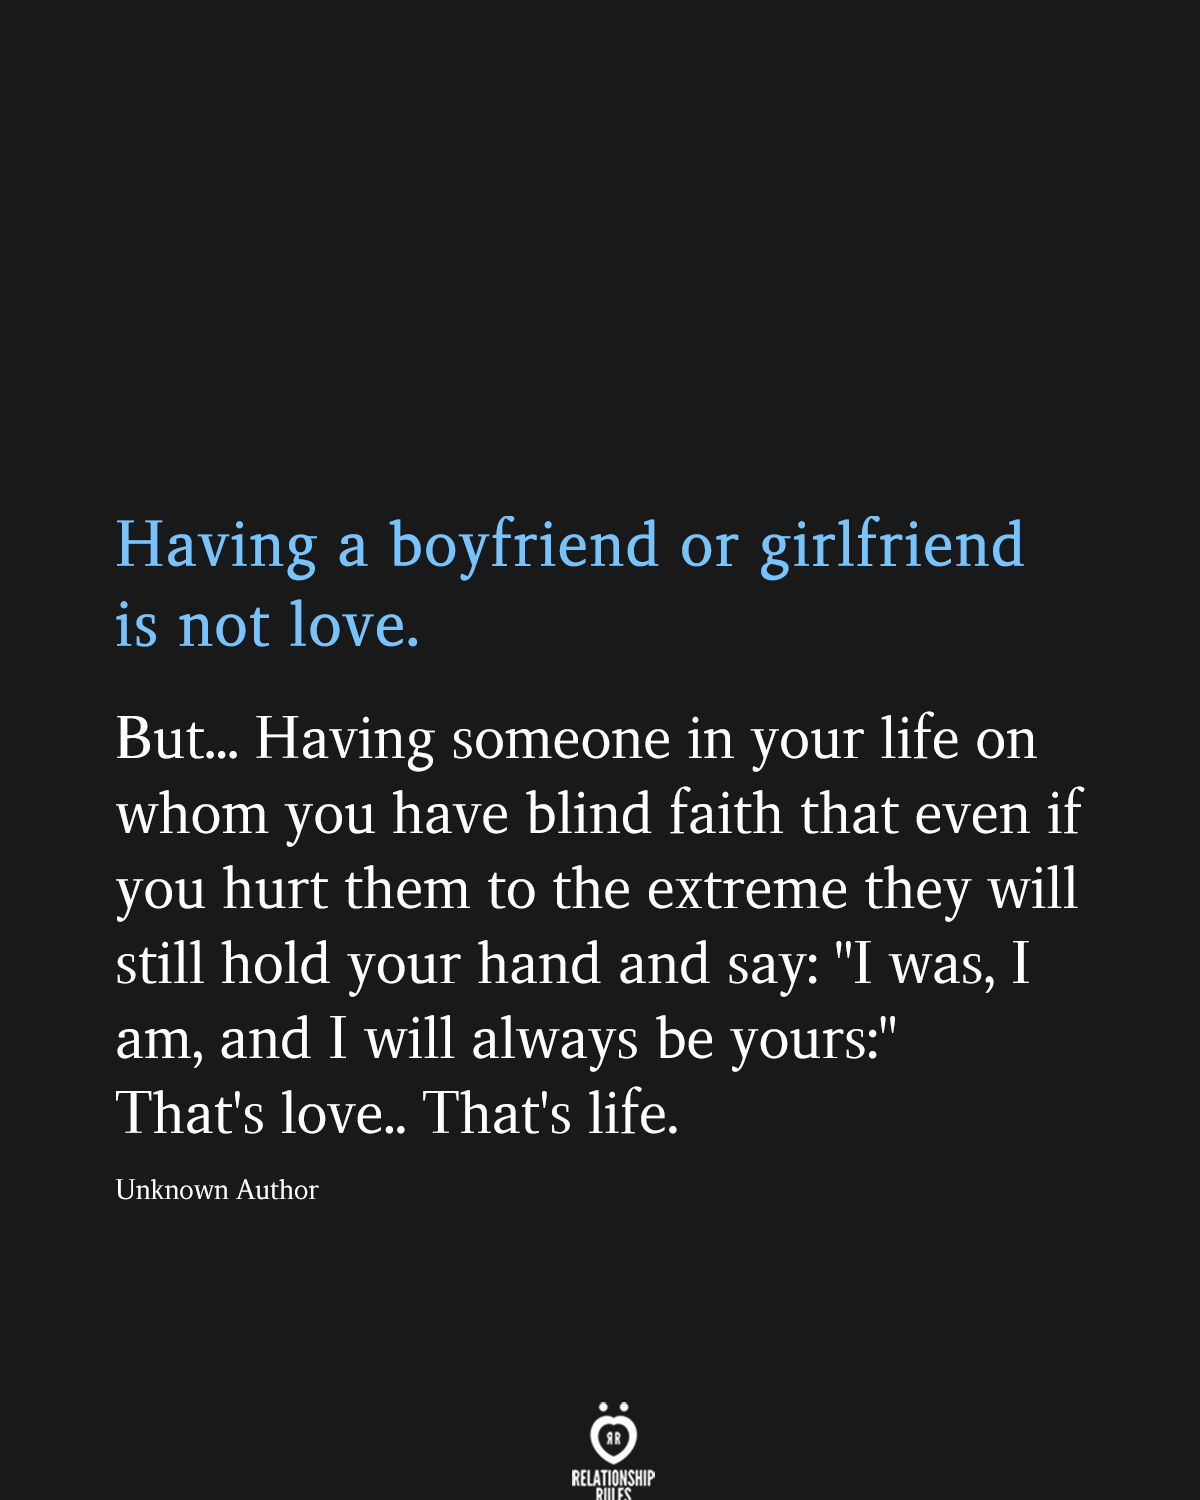 Having A Boyfriend Or Girlfriend Is Not Love Quotes About Strength And Love Heartfelt Quotes Reality Quotes